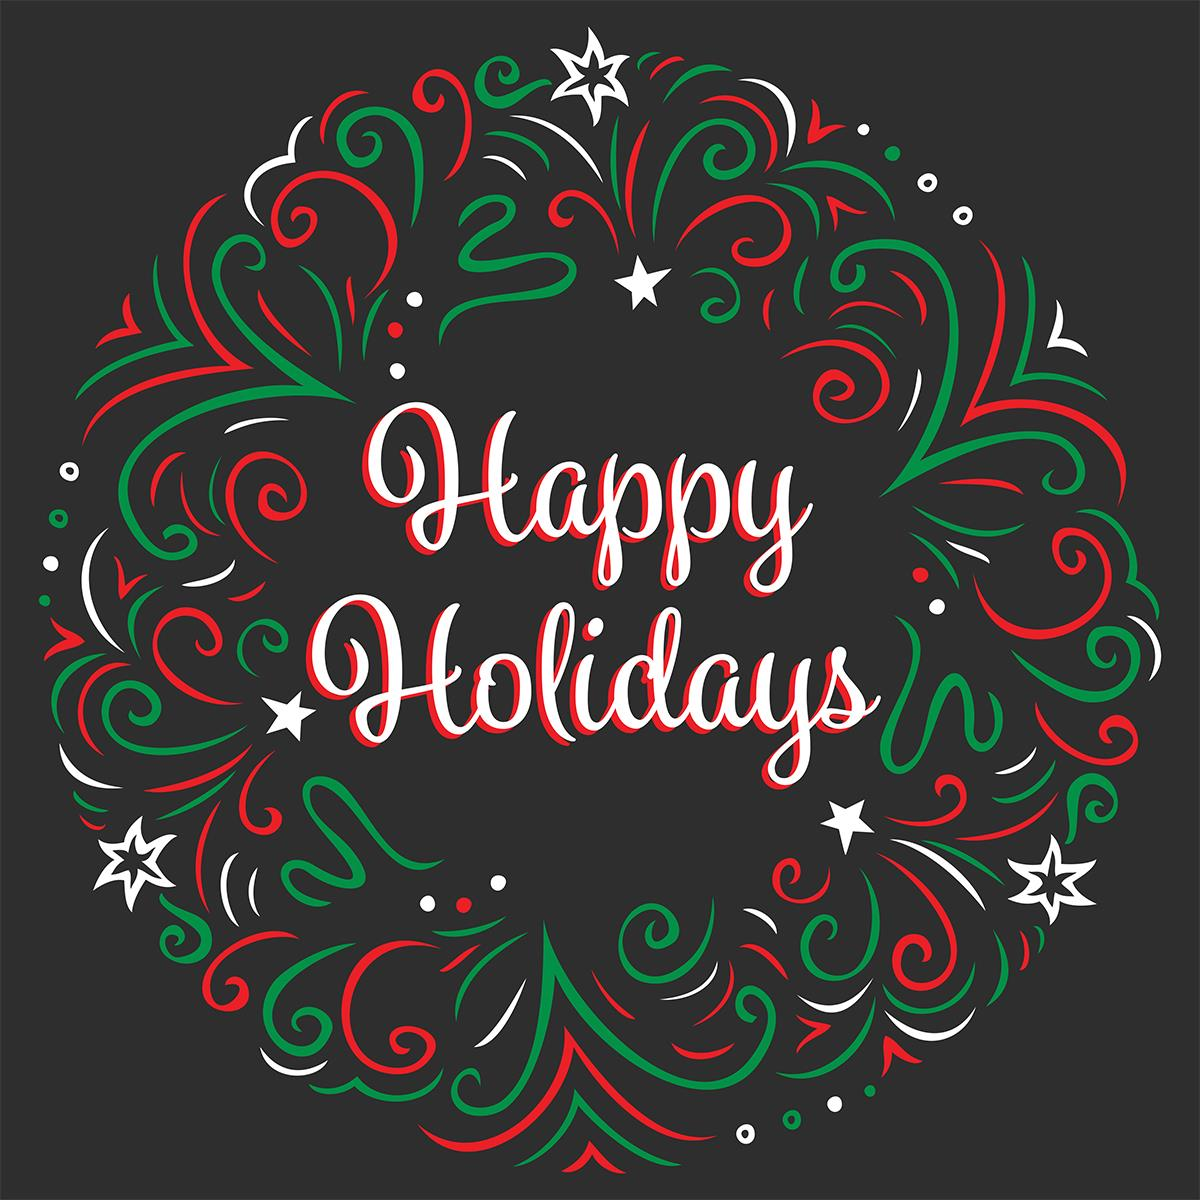 24 X 24 Seasonal Floor Decal Happy Holidays Message